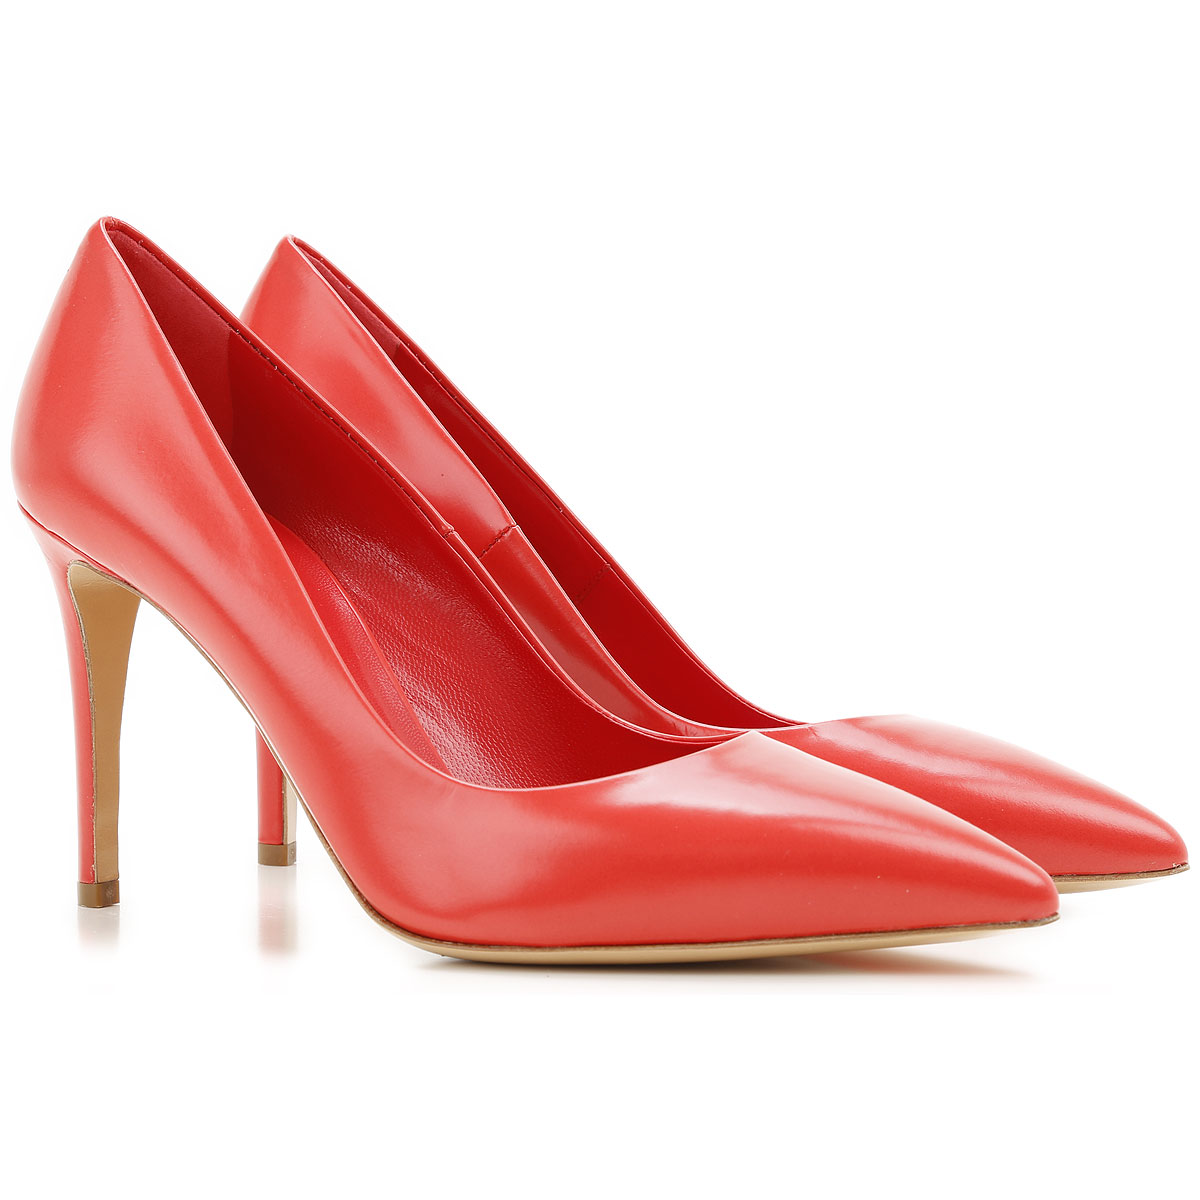 Nina Lilou Pumps & High Heels for Women in Outlet Tomato Red USA - GOOFASH